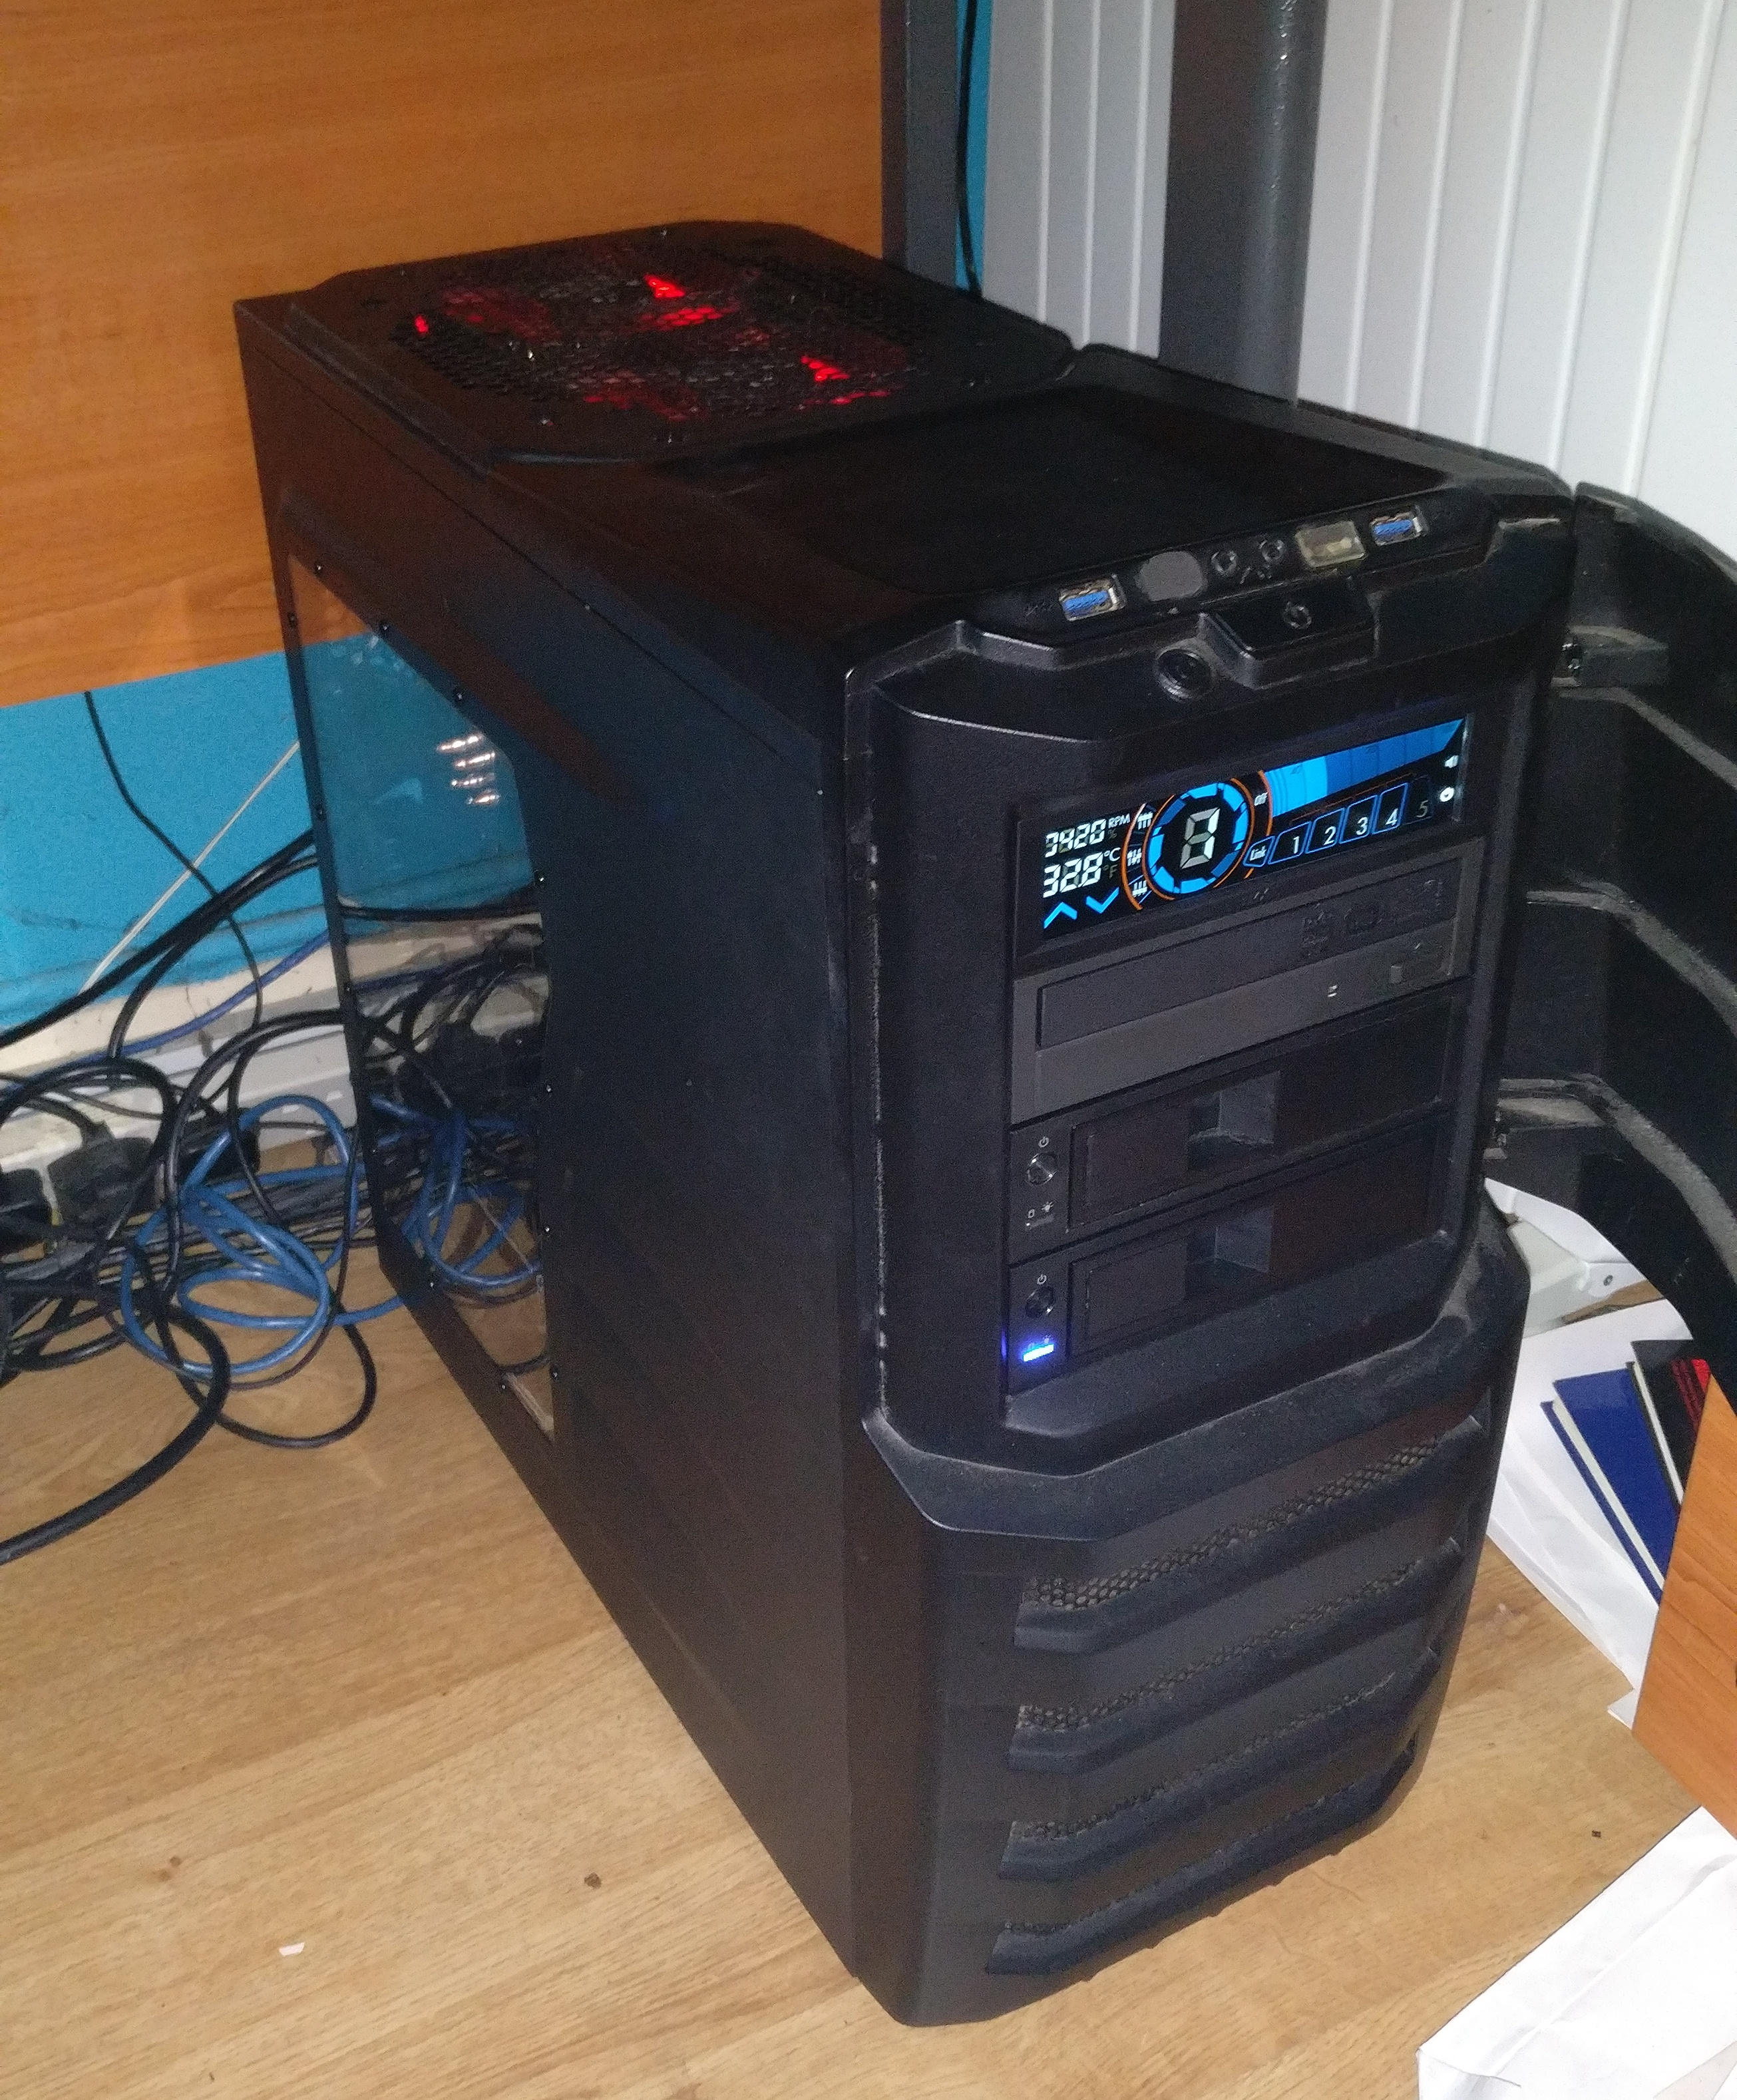 Building a dual Xeon X5680 workstation – Data Hamster